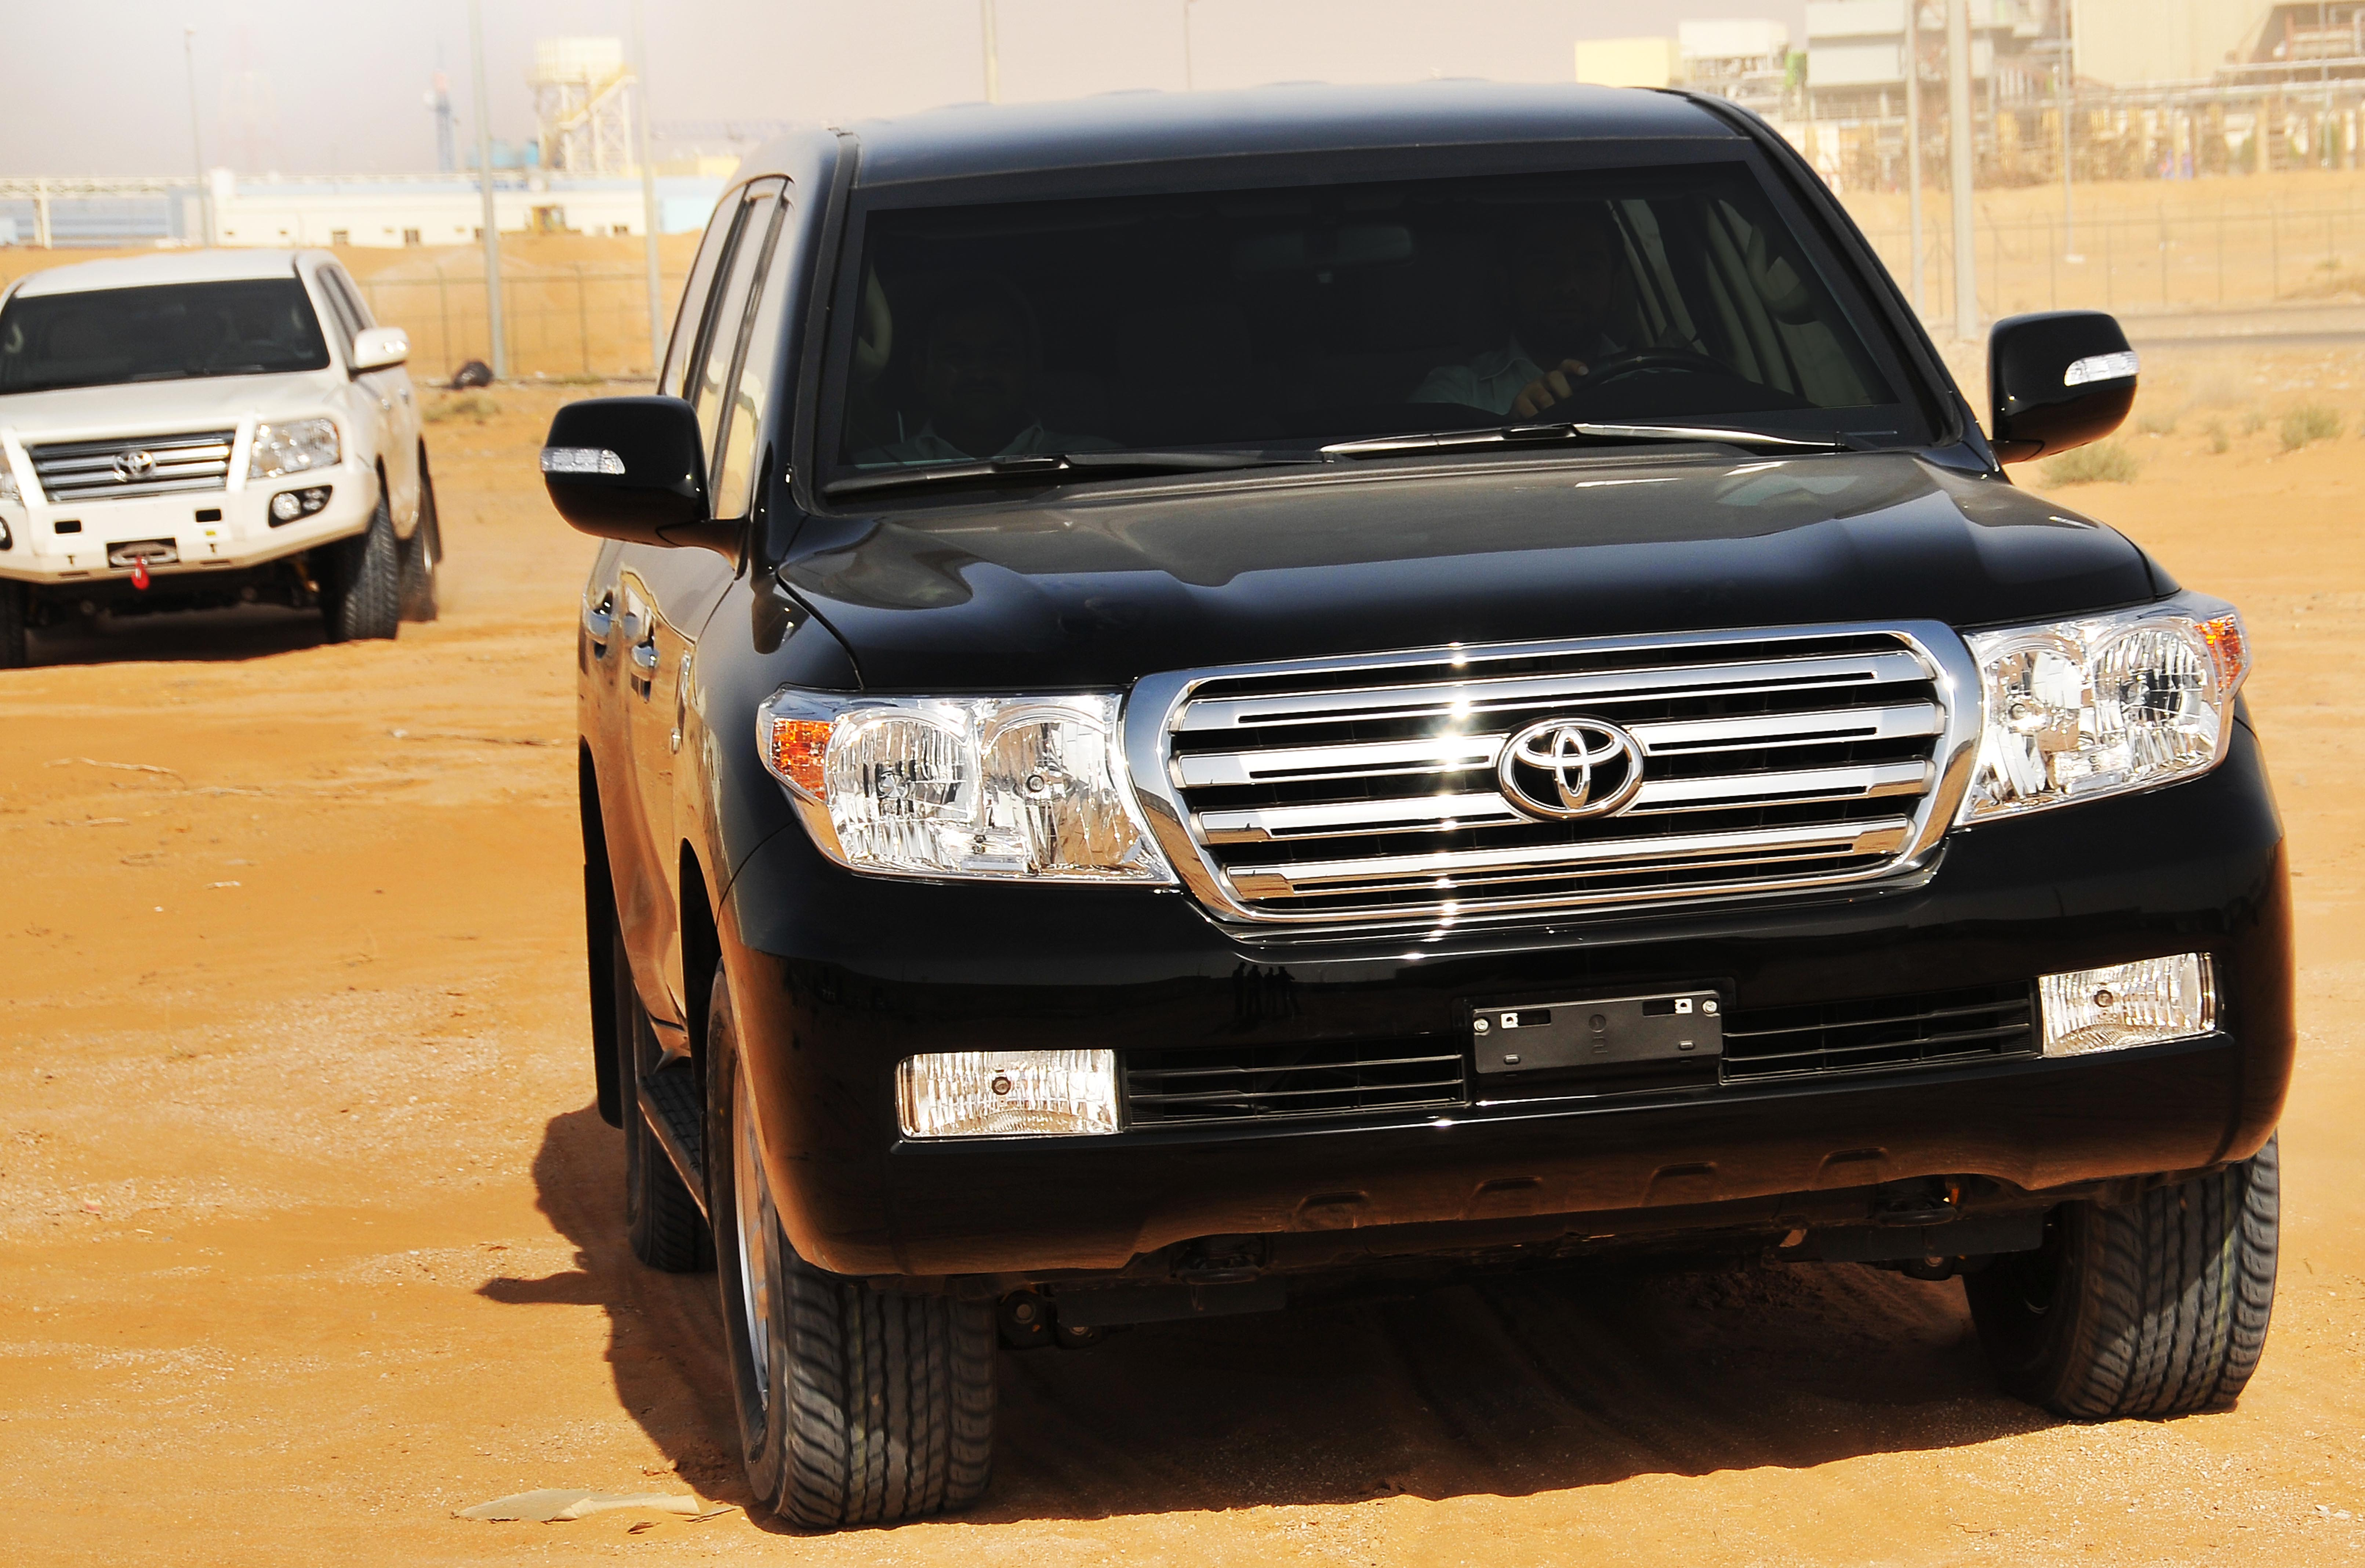 The Armored Toyota Land Cruiser